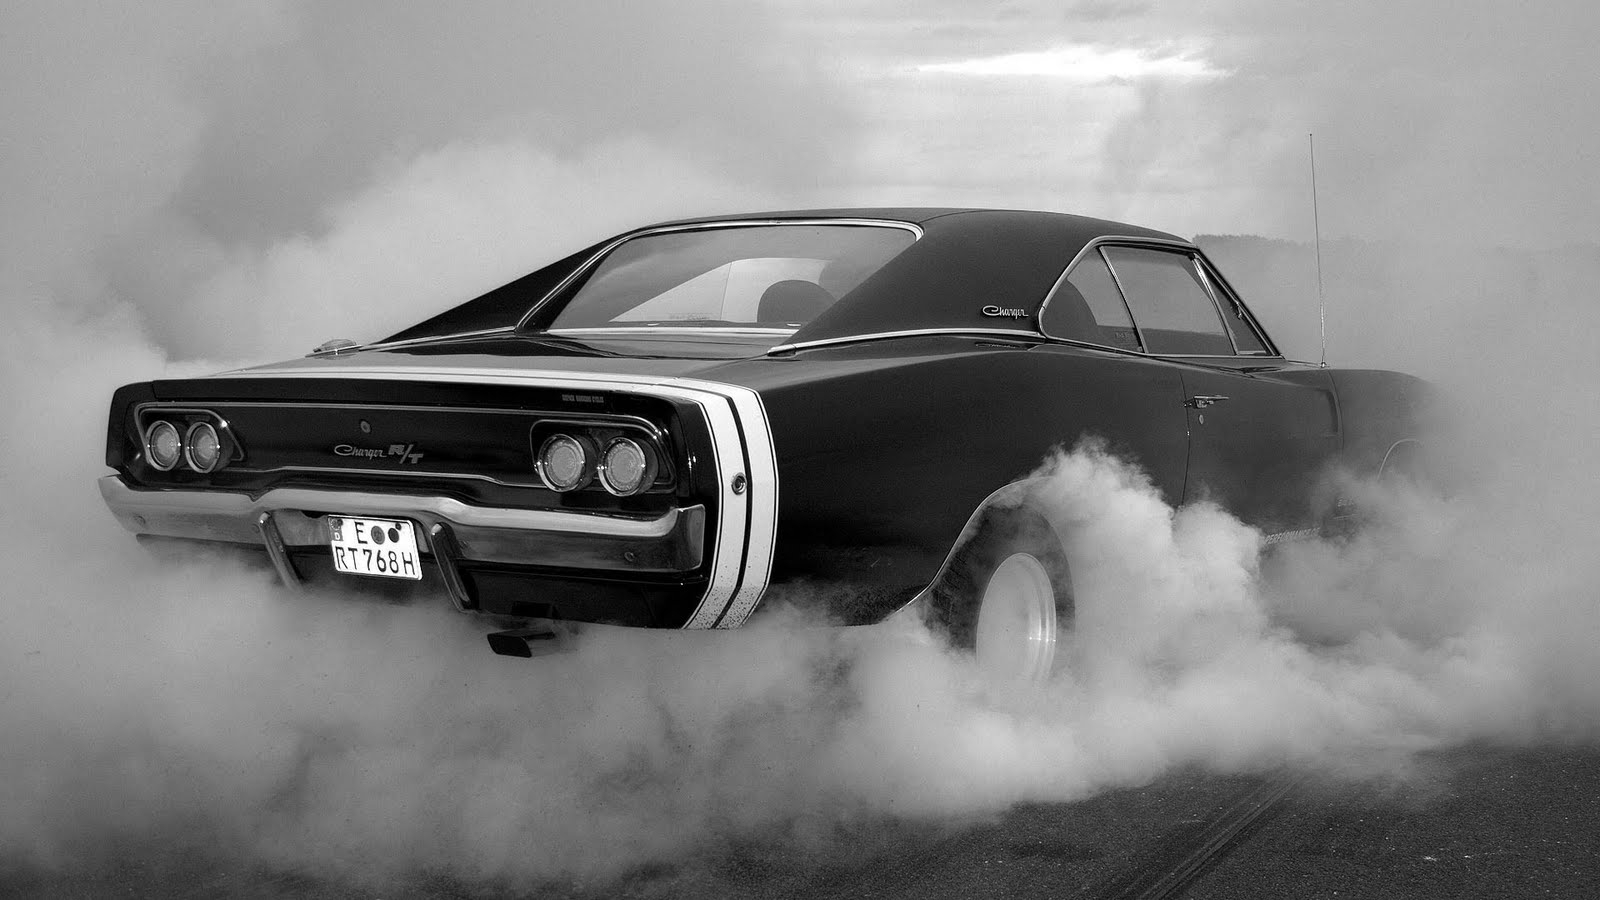 old school cars wallpaper, gorgeous wallpapers of old school cars 4k